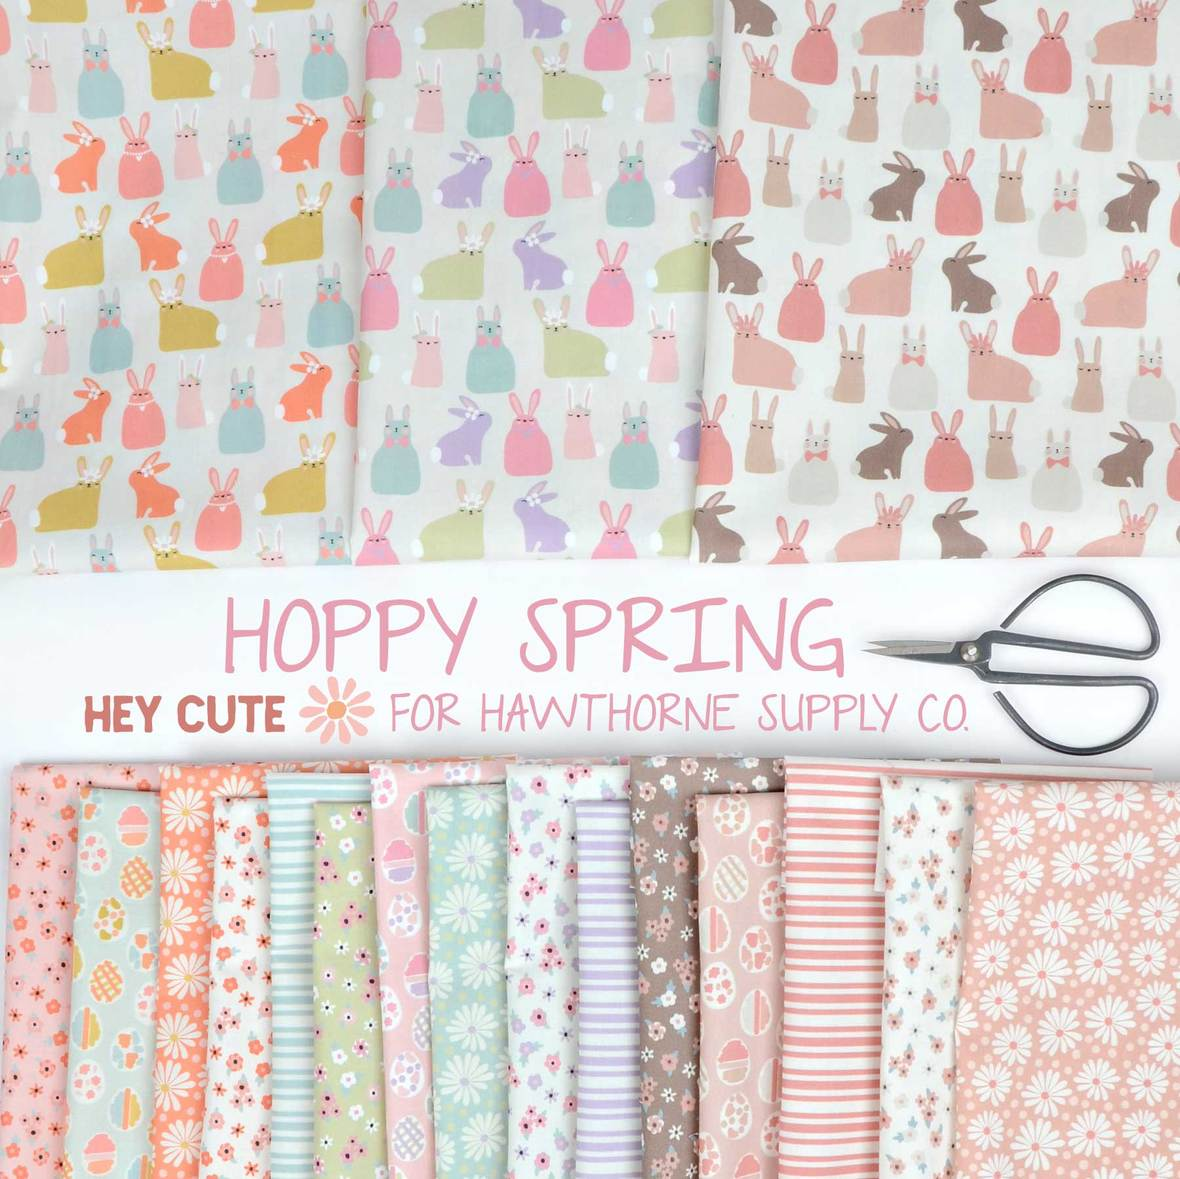 Hoppy-Spring-Hey-Cute-Design-for-Hawthorne-Supply-CO